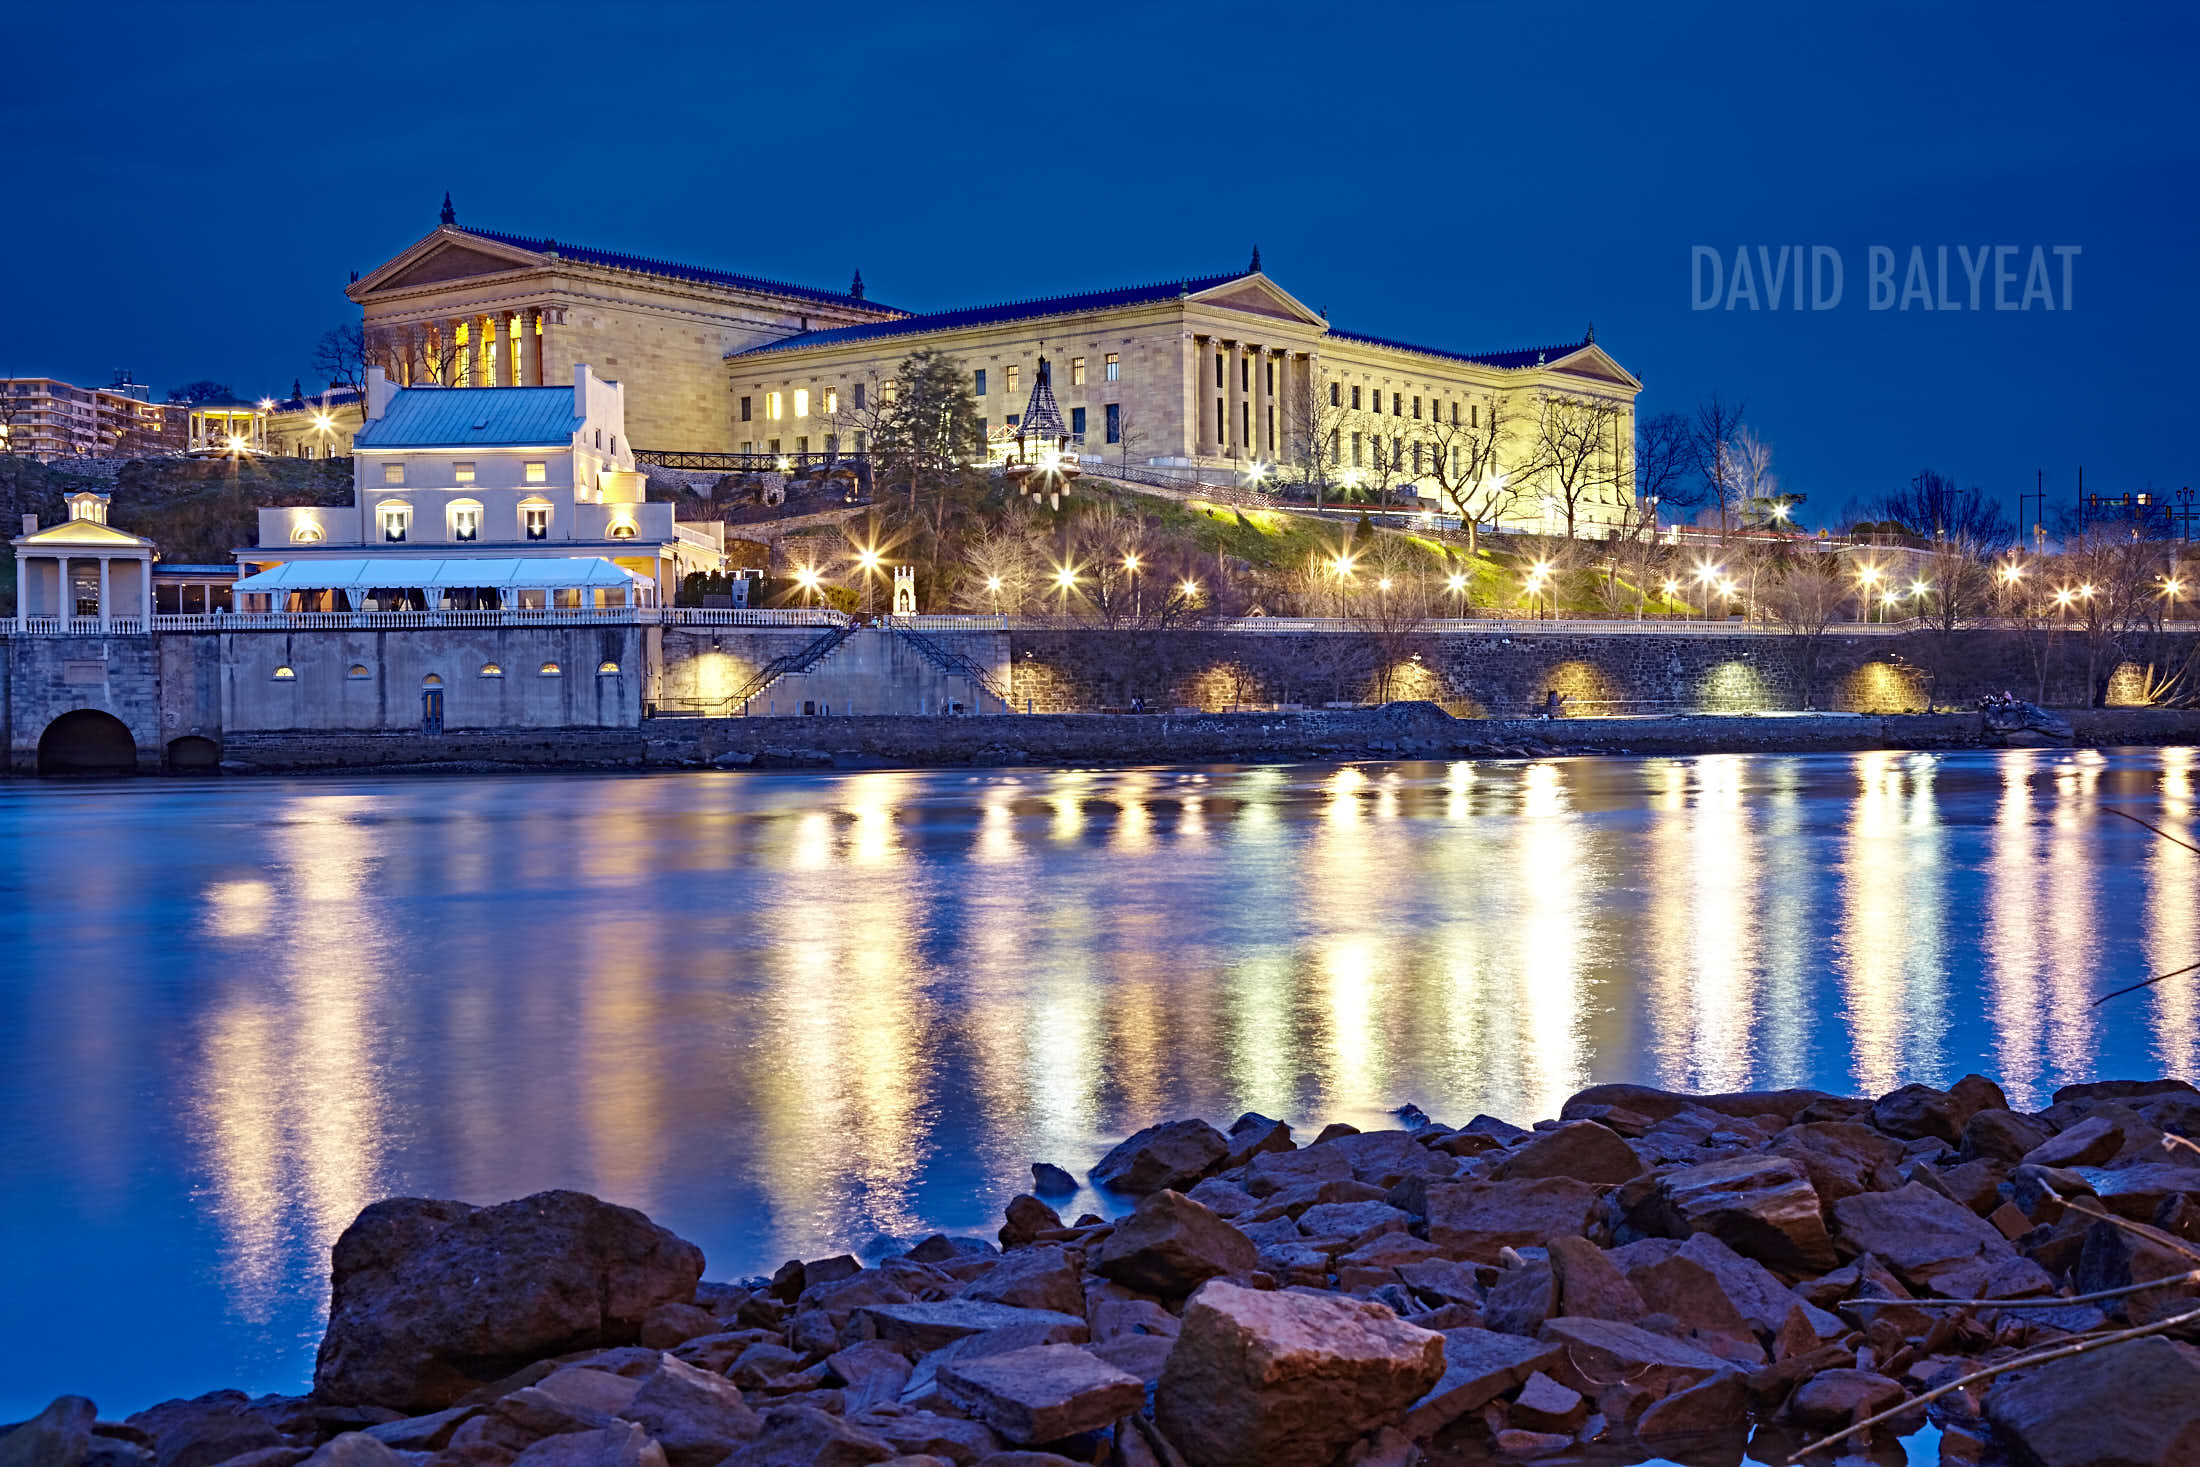 Schuylkill River Trail Philadelphia Museum of Art high-definition HD cityscape photography